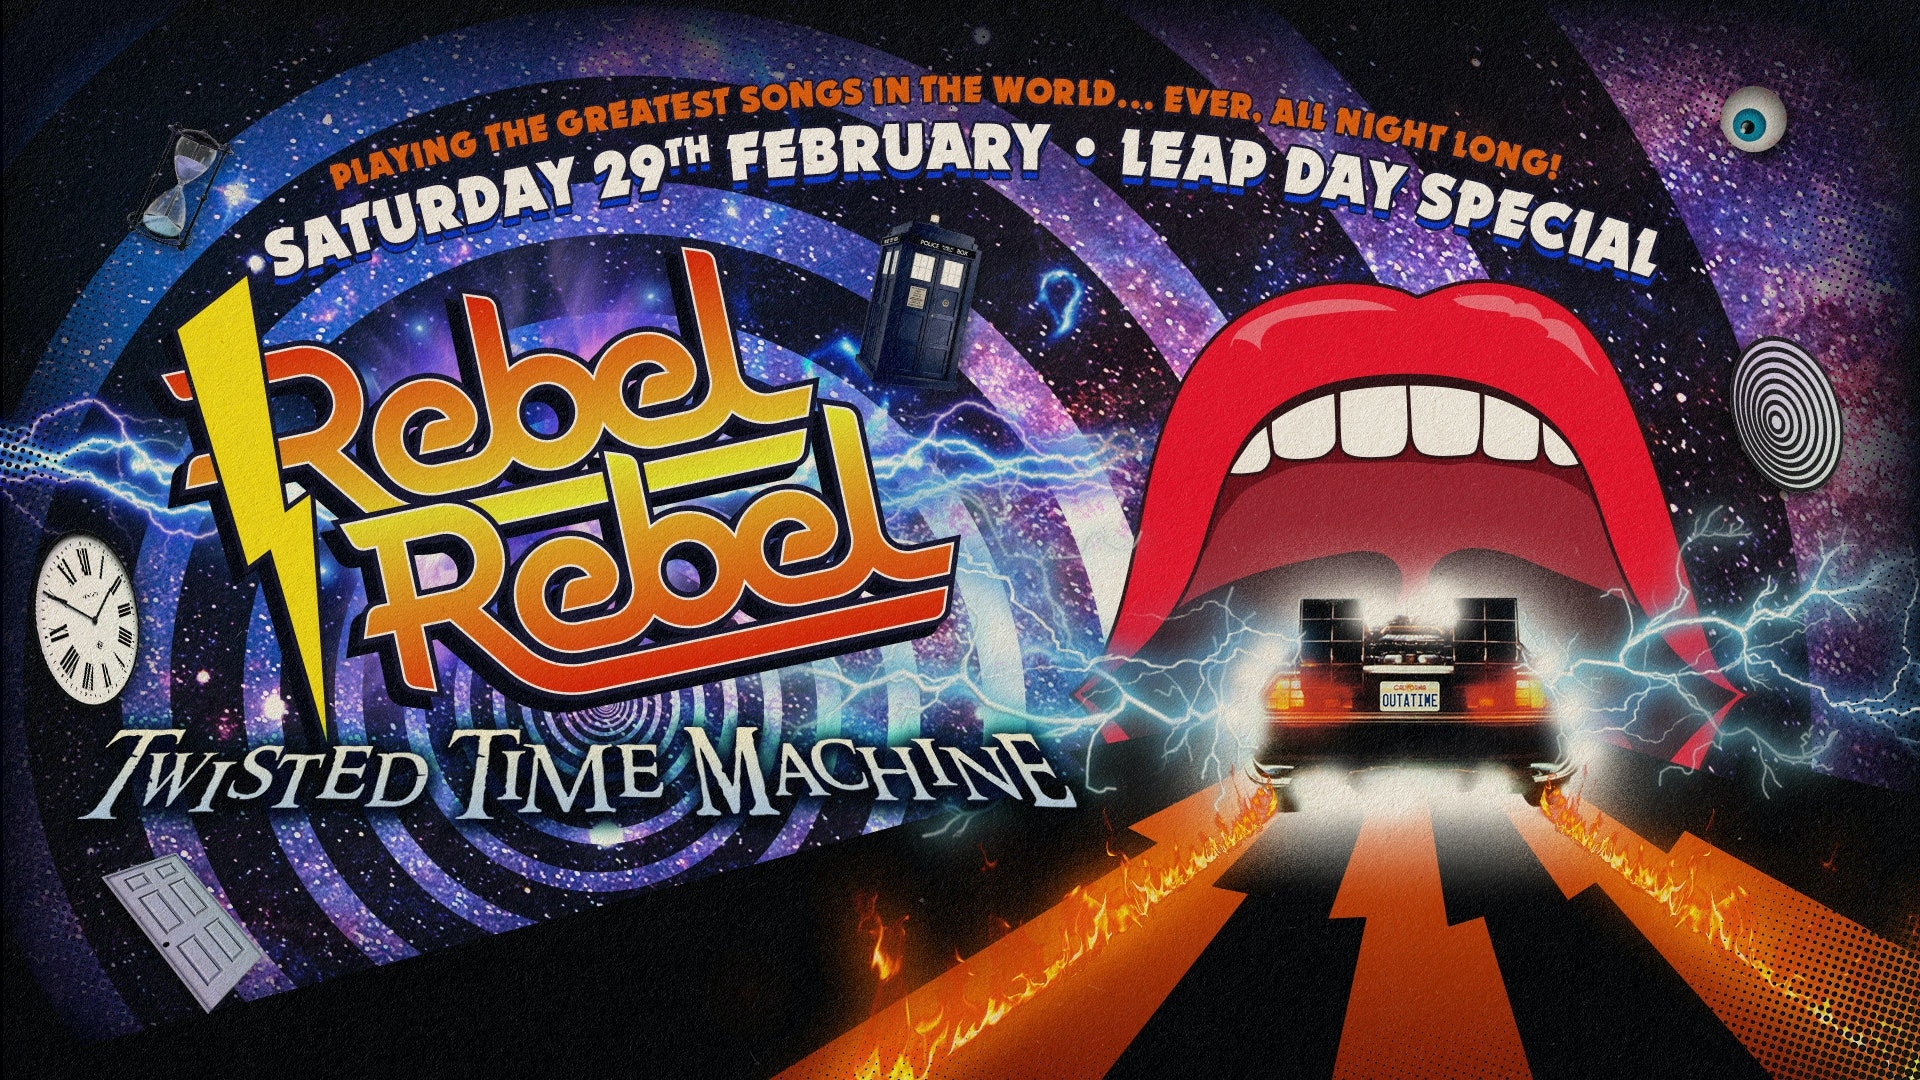 Rebel Rebel — Twisted Time Machine: Leap Day Special